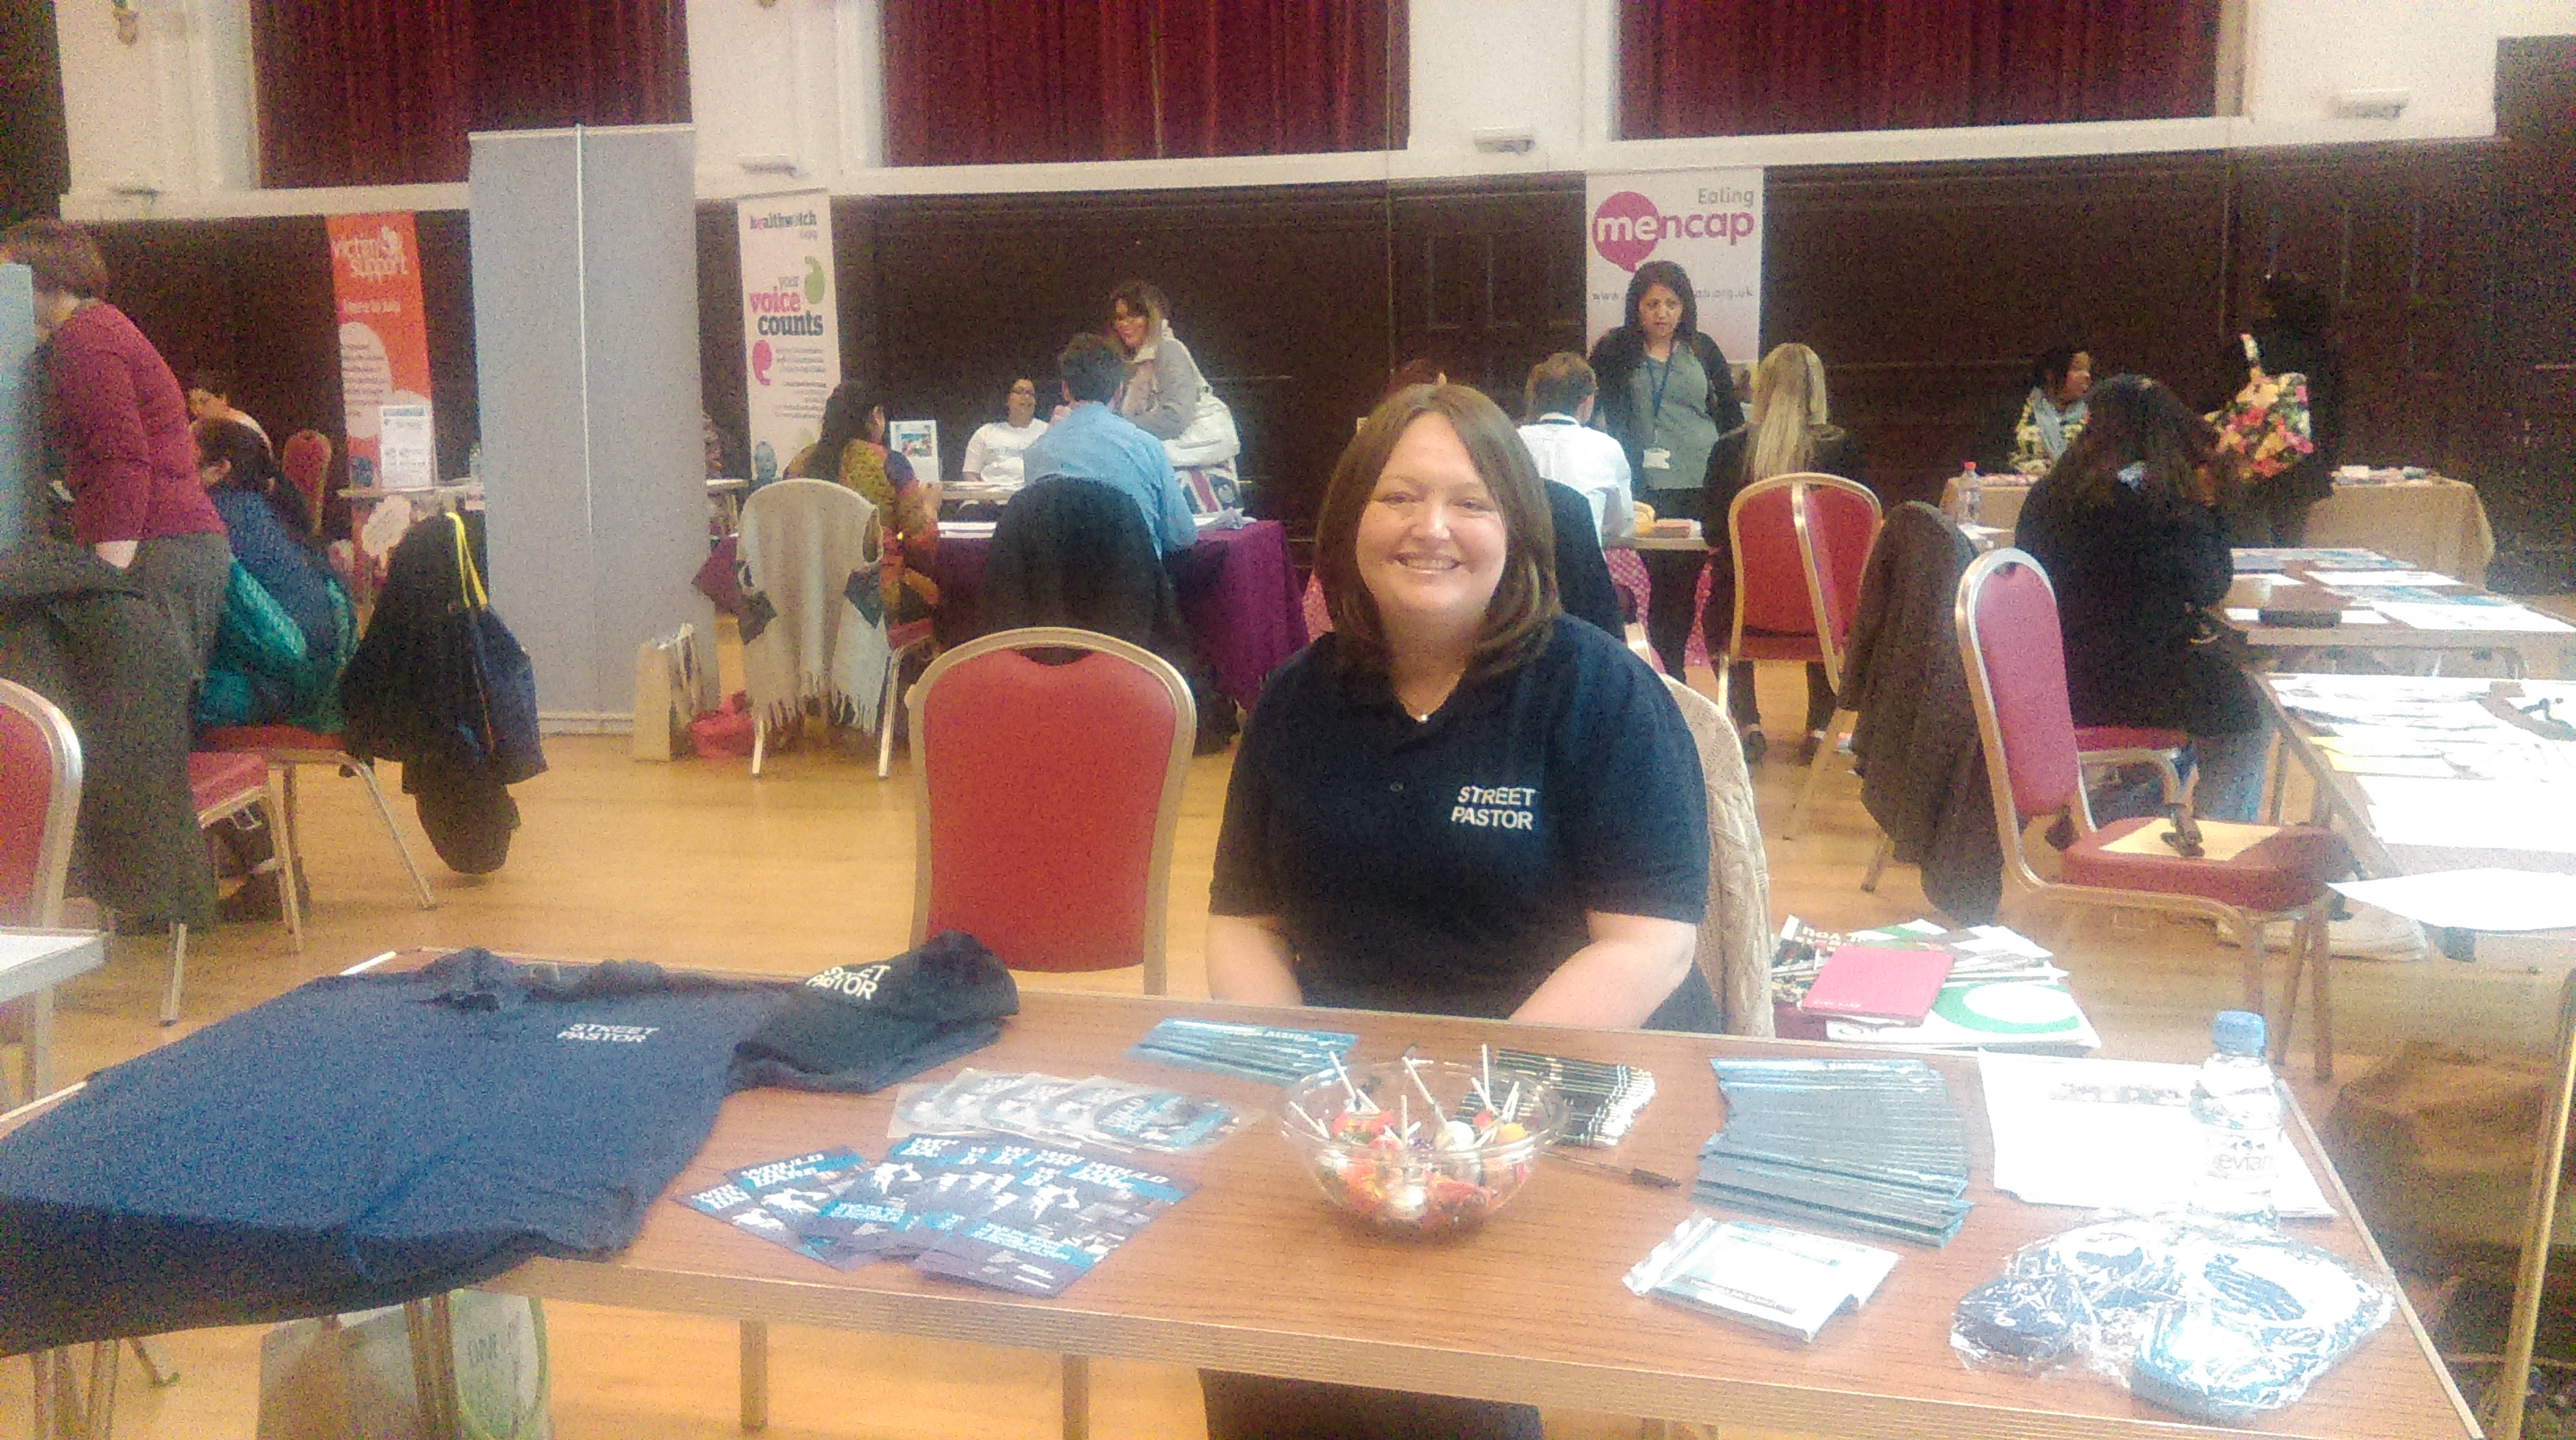 Ealing Volunteer Fair 2015